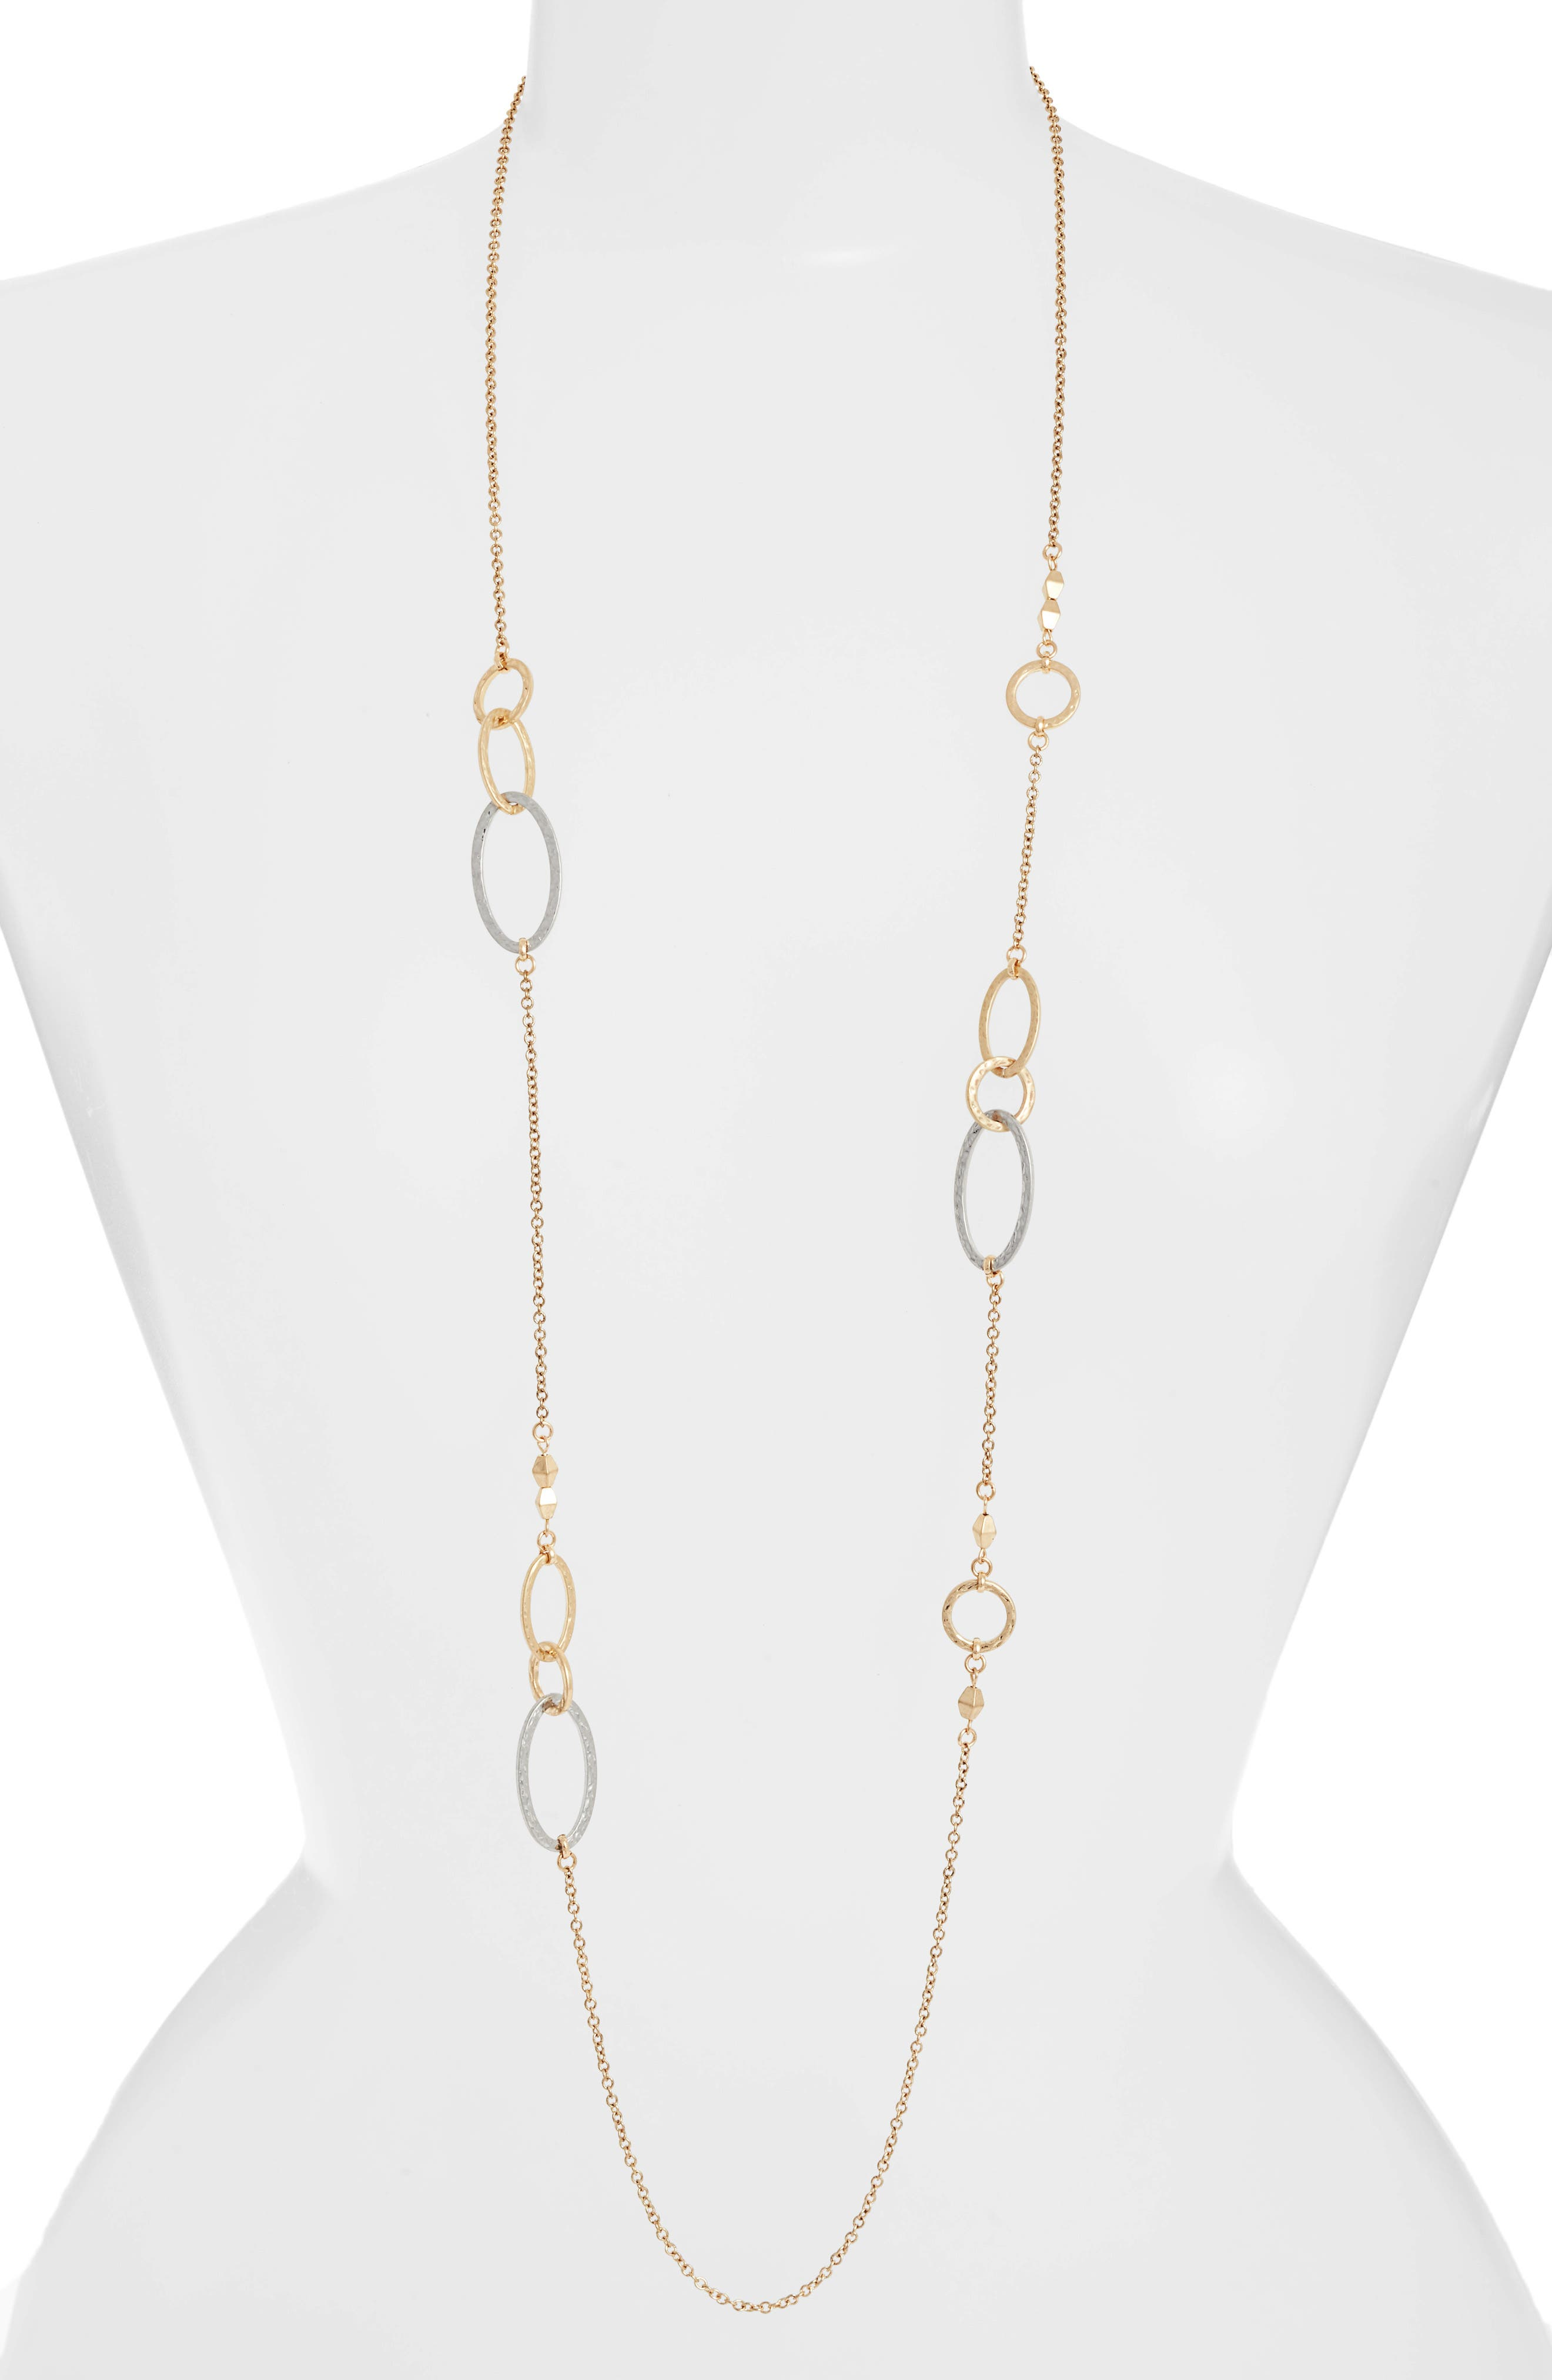 Two-Tone Oval Station Necklace,                         Main,                         color, Rhodium- Gold